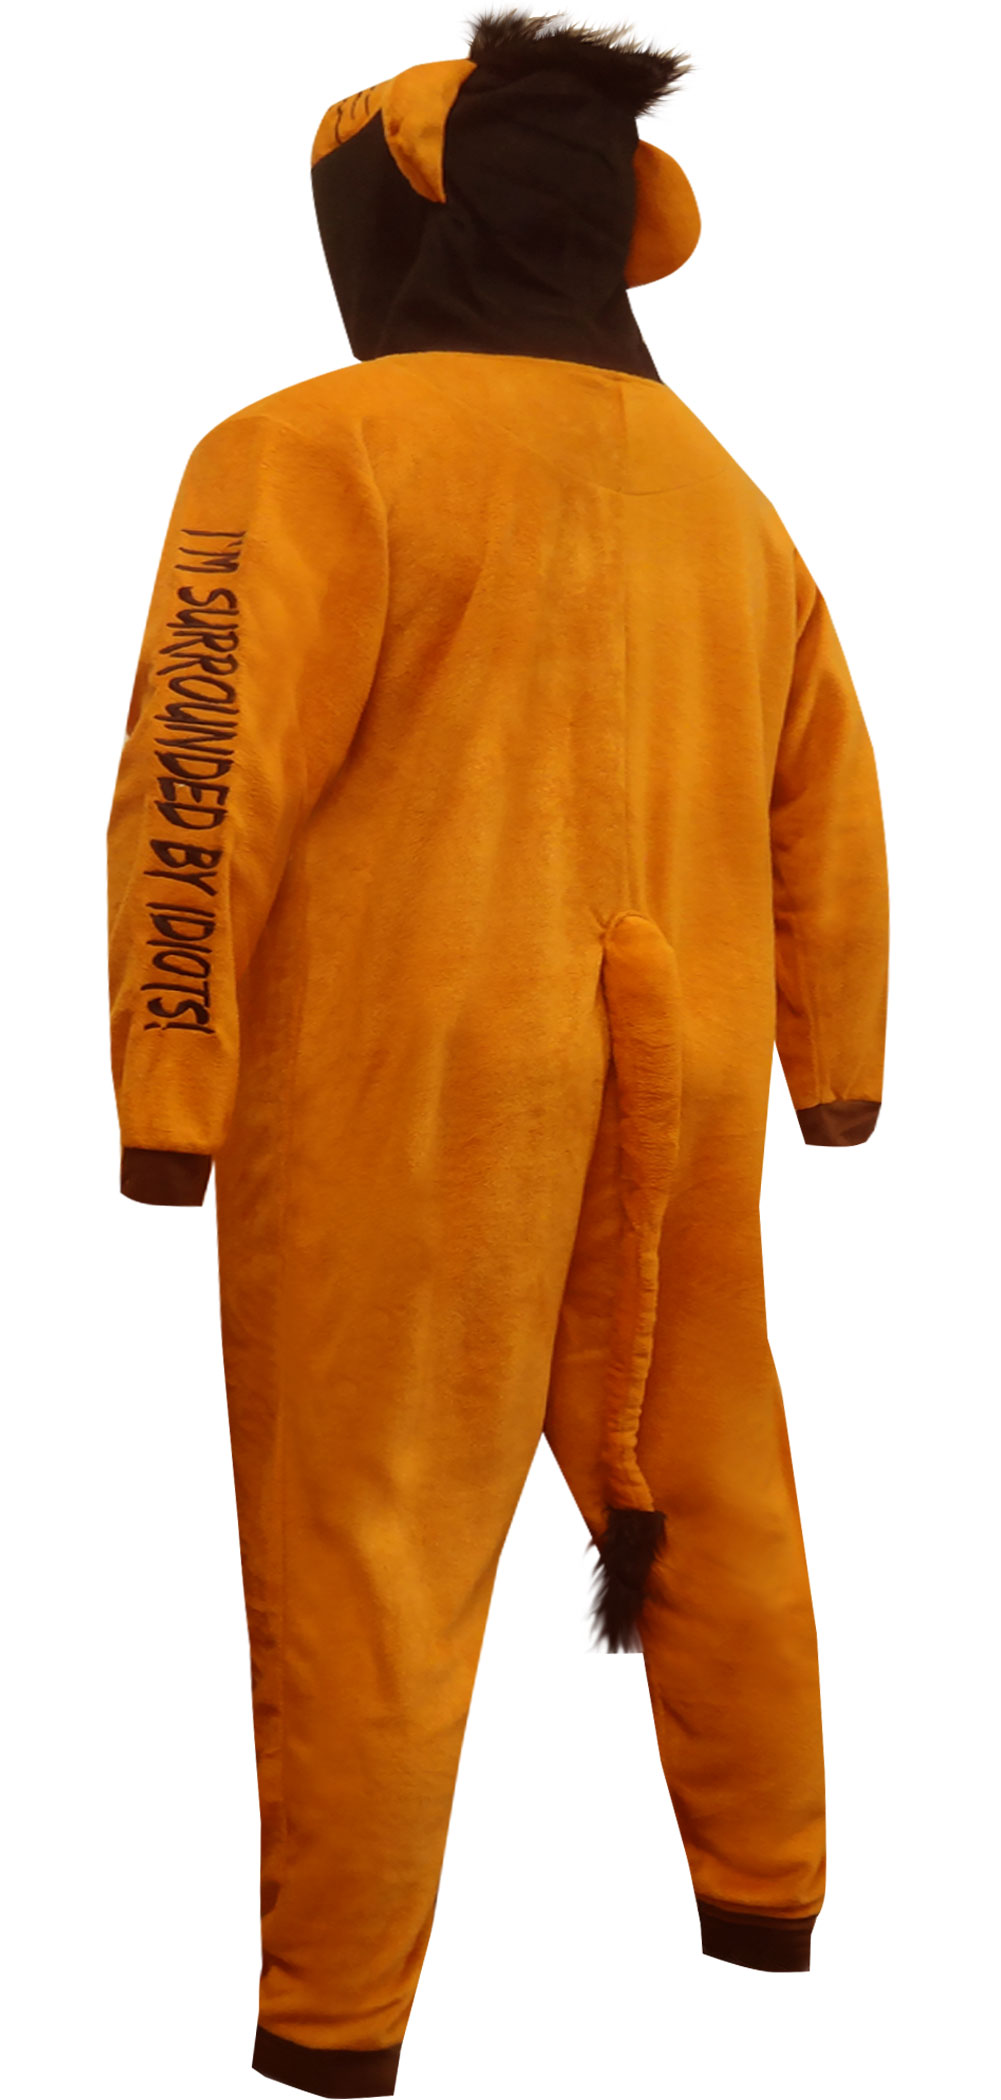 6137de008 WebUndies.com Lion King Scar the Villain Onesie Pajama